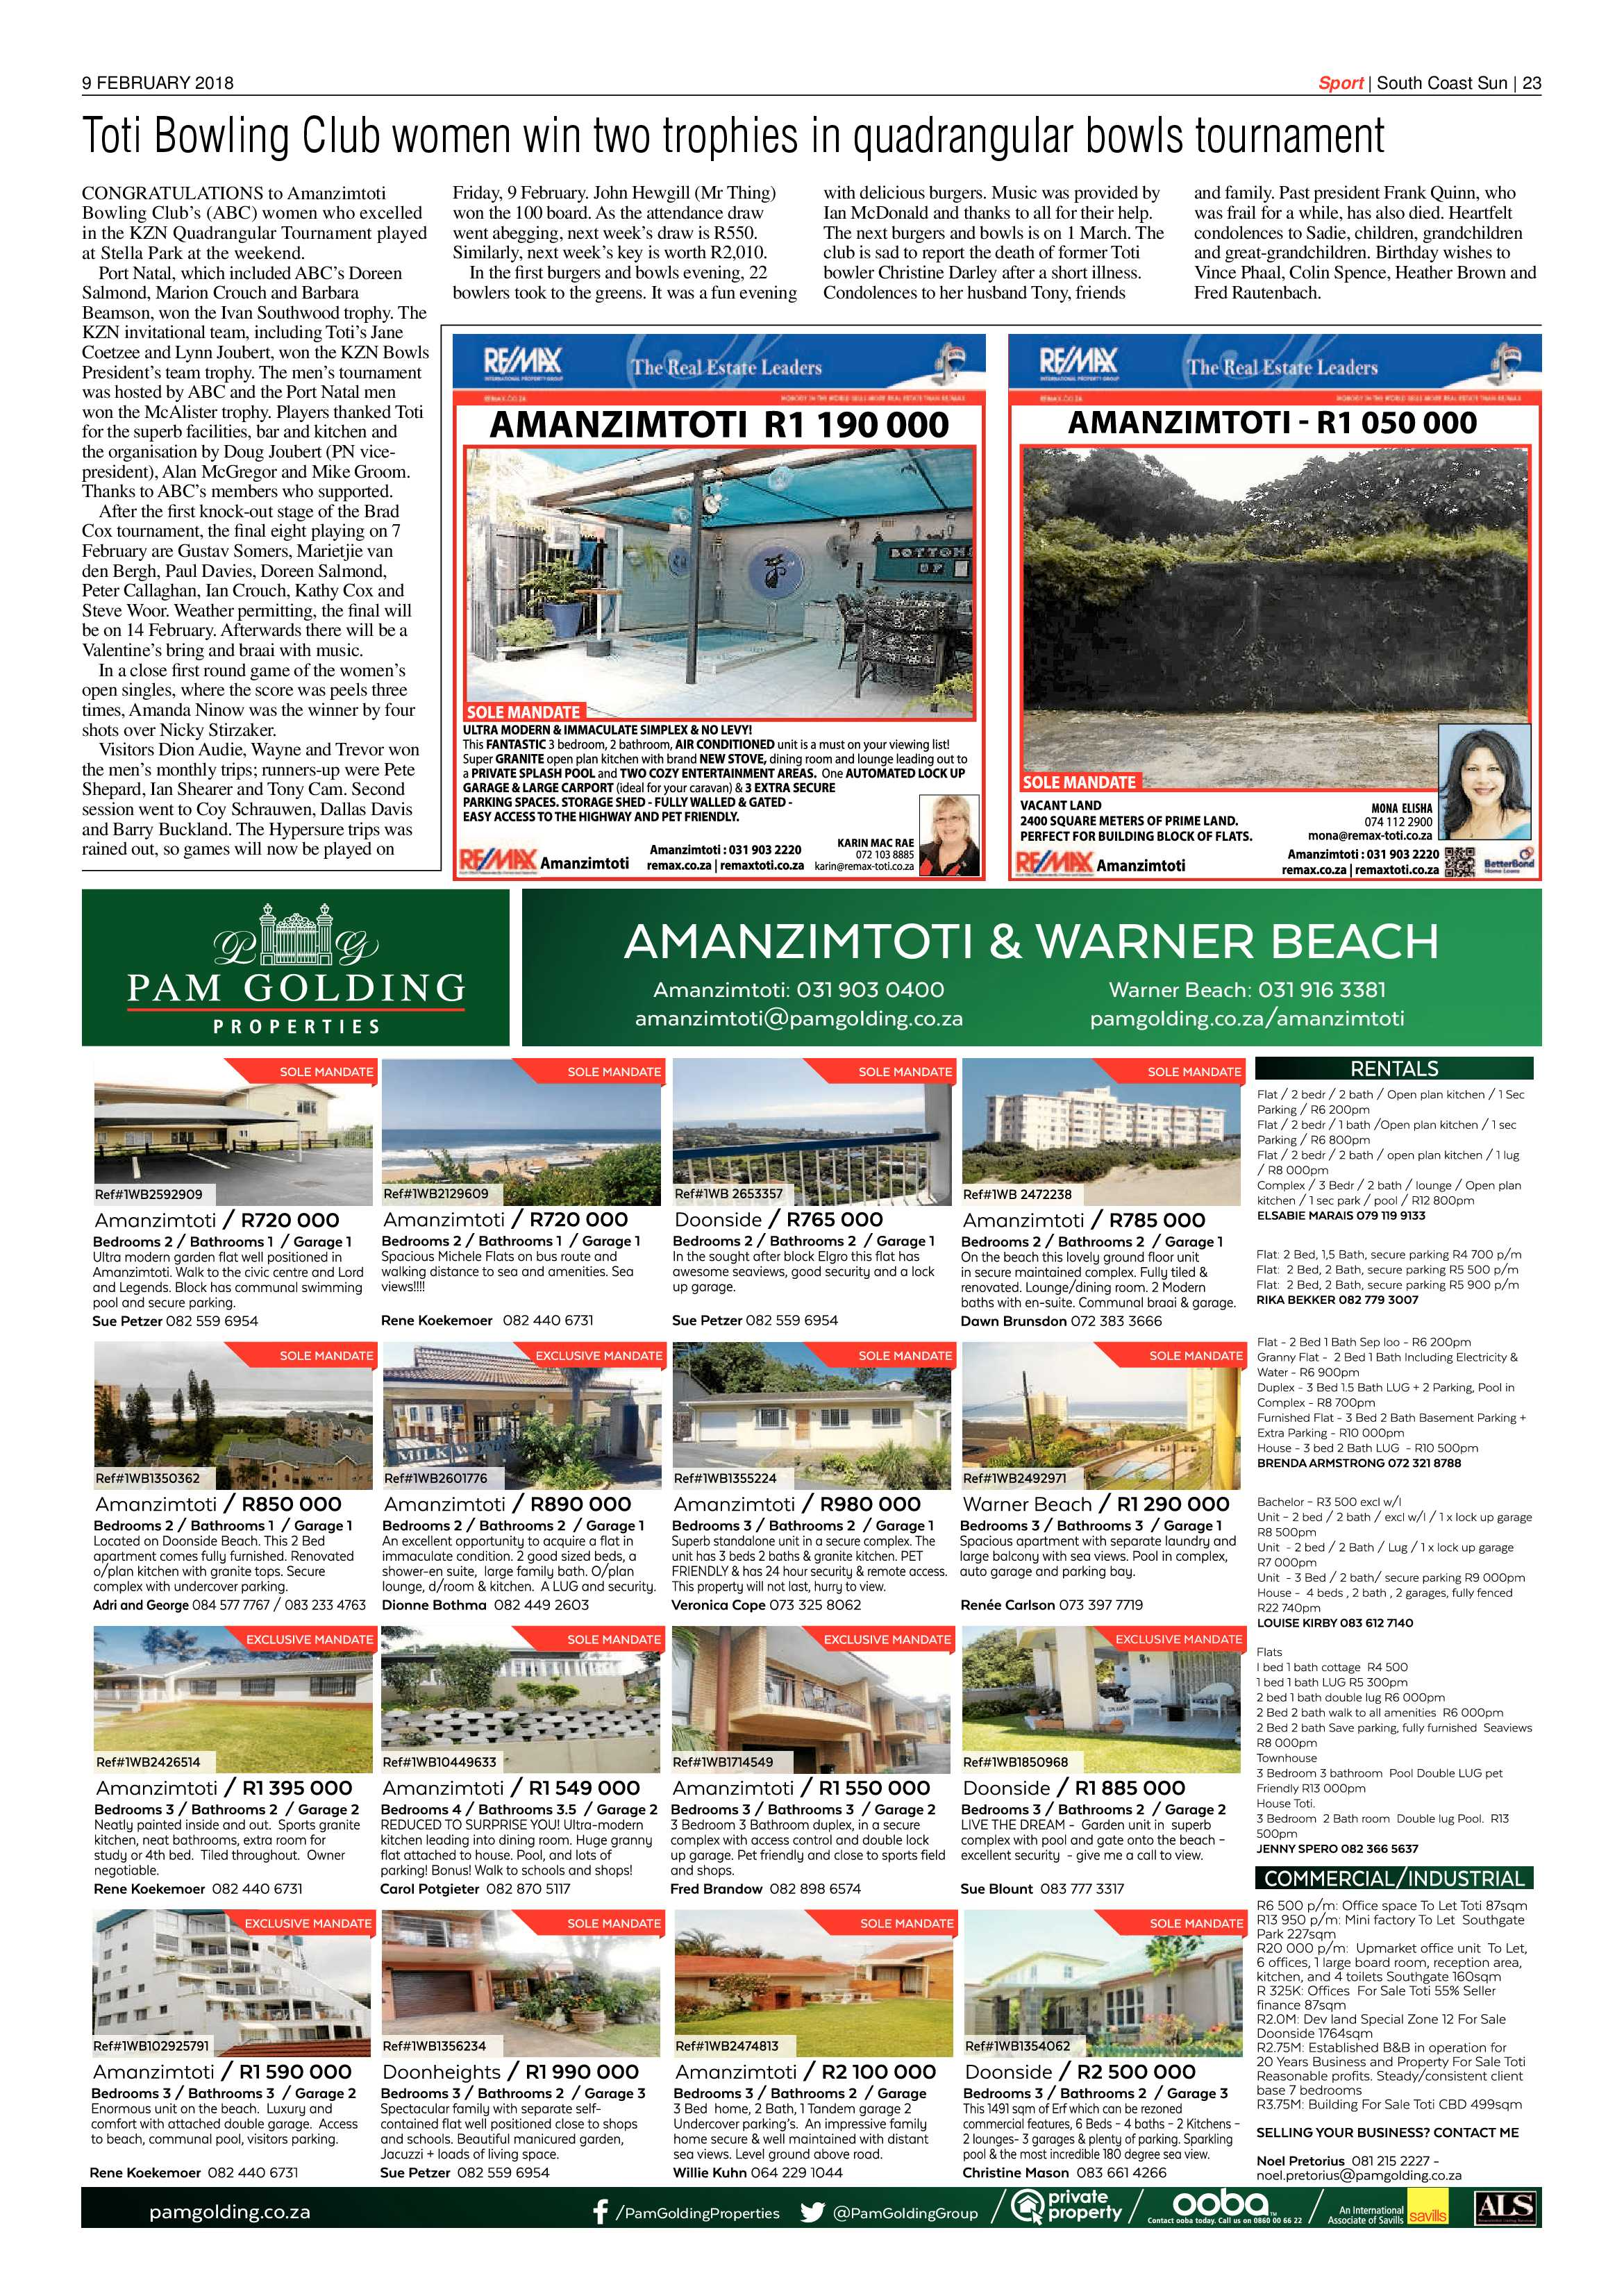 9-february-2018-epapers-page-22